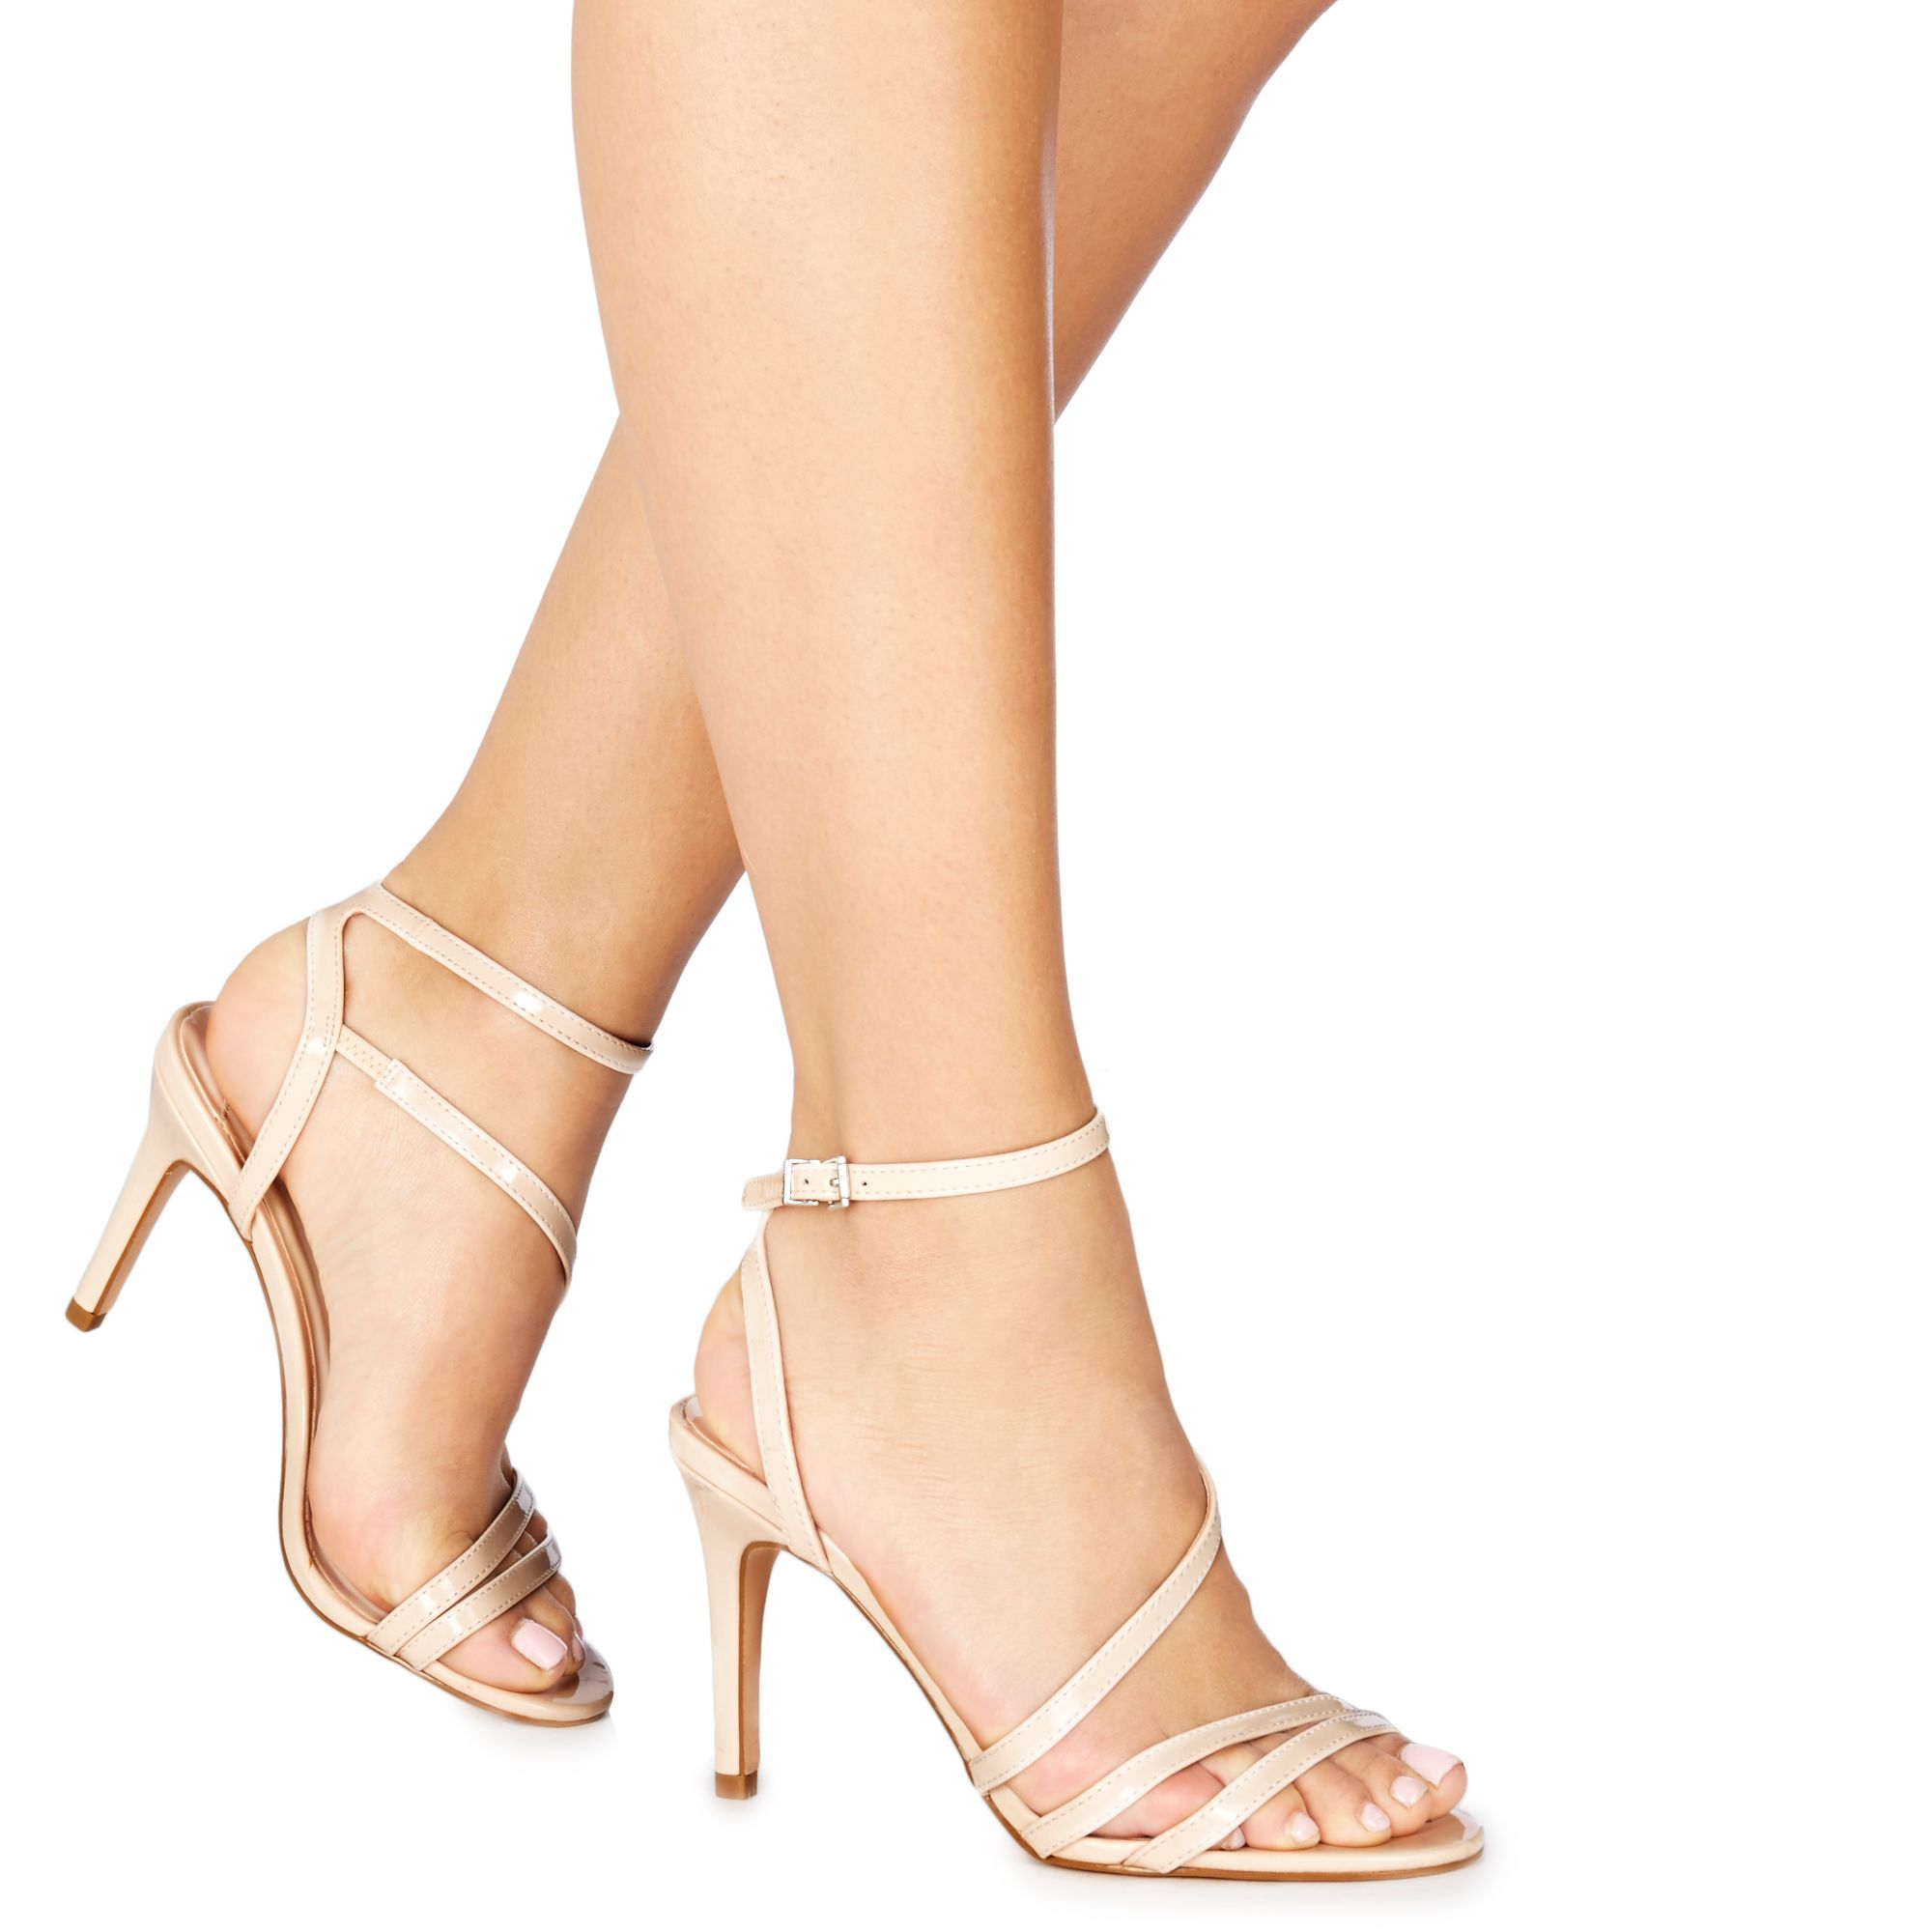 aa8cb256a52 Details about Faith Womens Pale Pink Patent  Delly  High Stiletto Heel  Ankle Strap Sandals